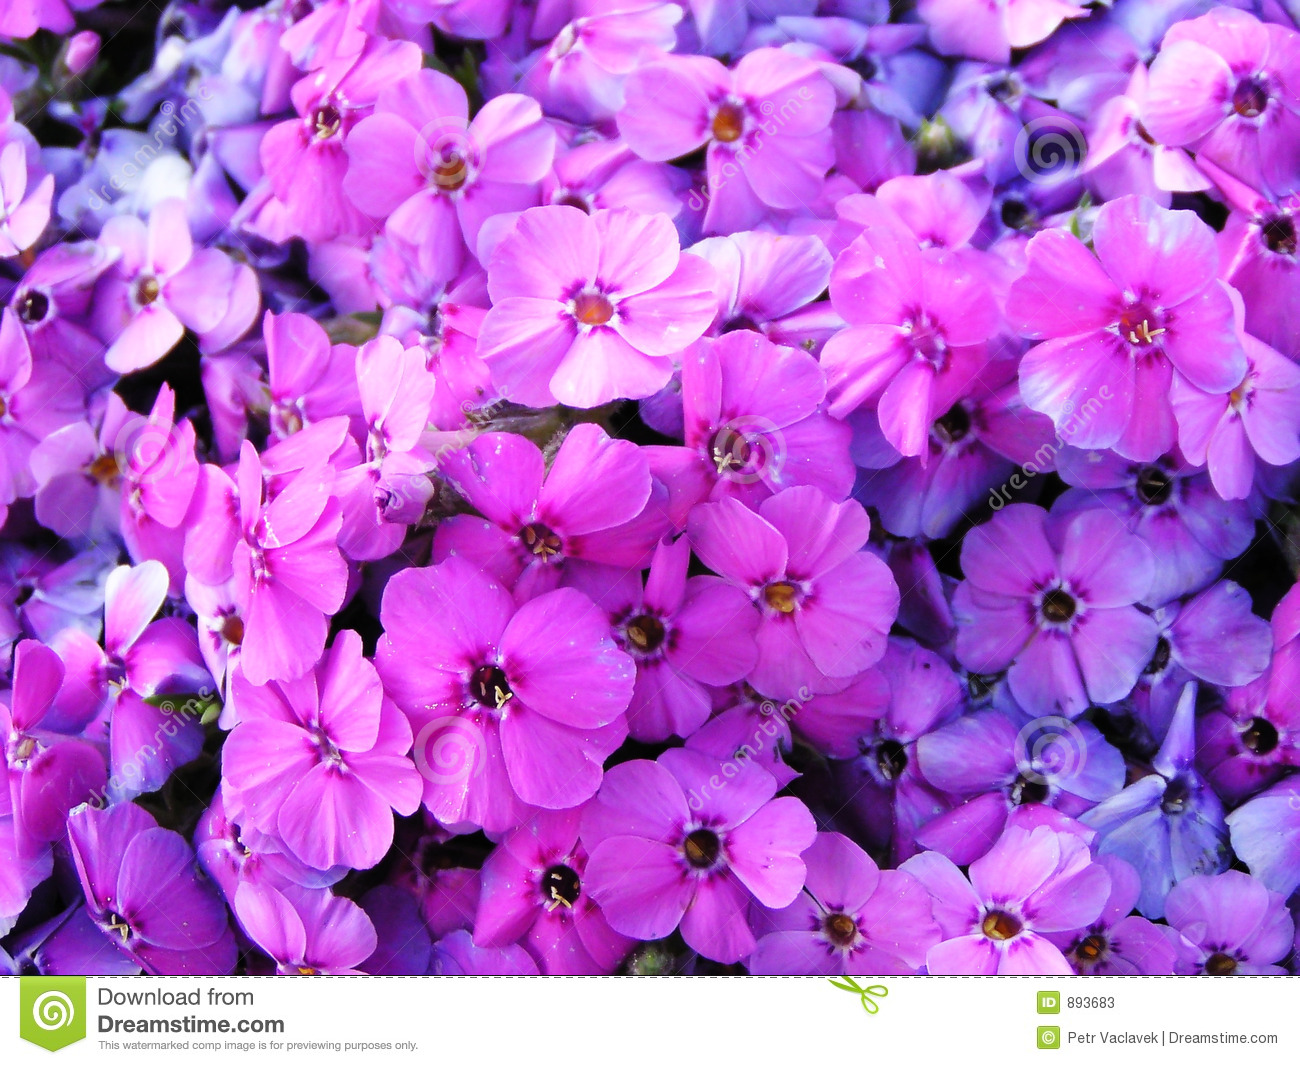 Images of violet flowers image free download Image Full Of Violet Flowers Stock Photos - Image: 893683 image free download